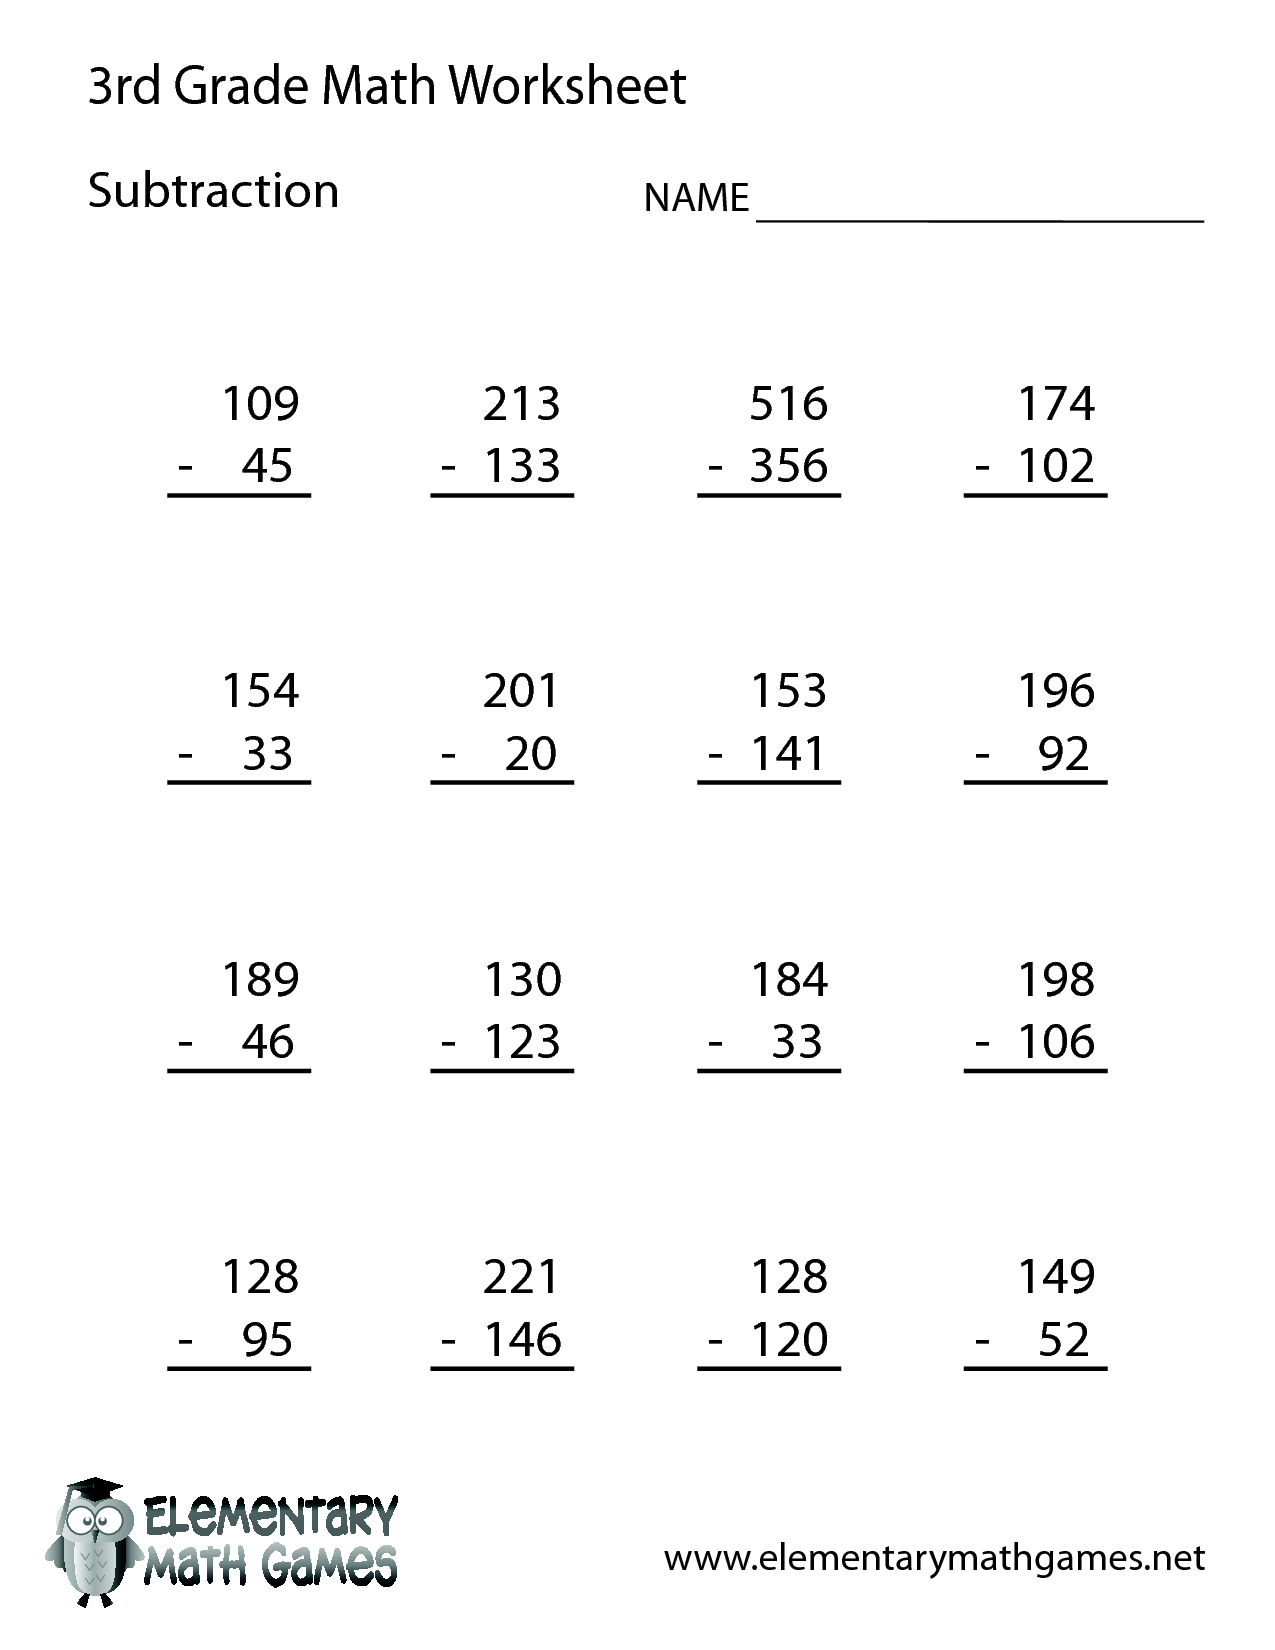 3rd Grade Math Subtraction Worksheets Scalien – Math 3 Grade Worksheets